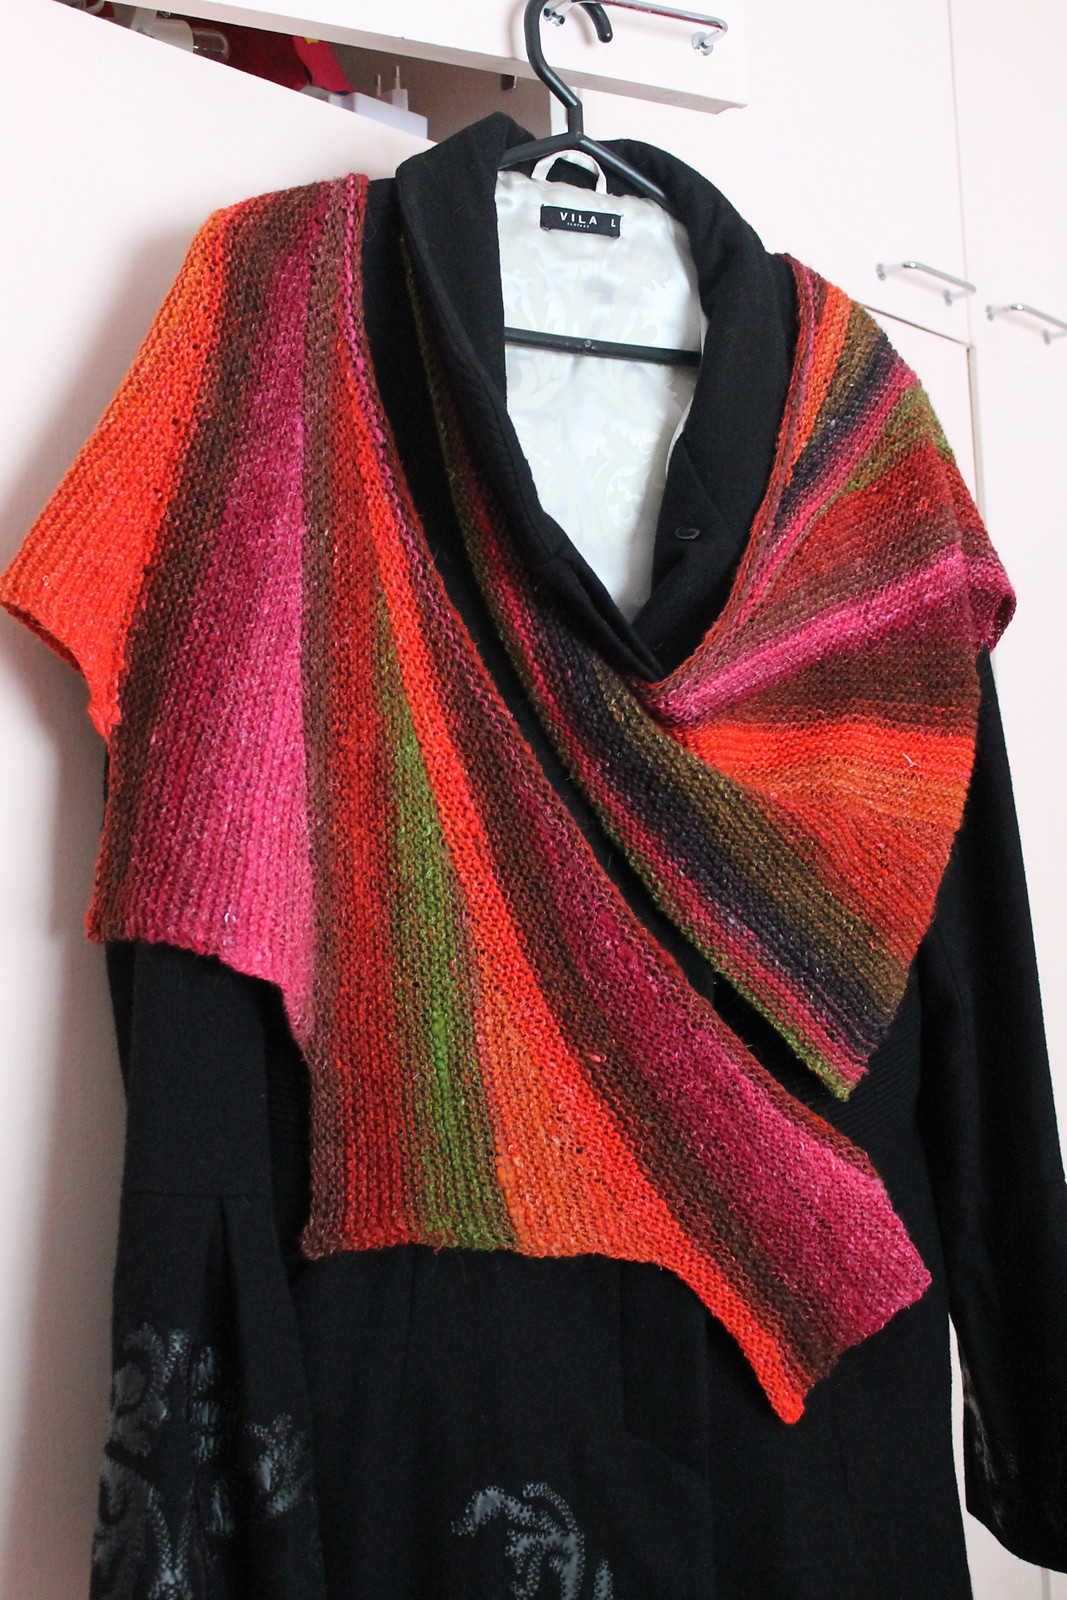 Shawl Patterns Luxury Bits and Pieces Wingspan Knitalong Of Luxury 45 Images Shawl Patterns